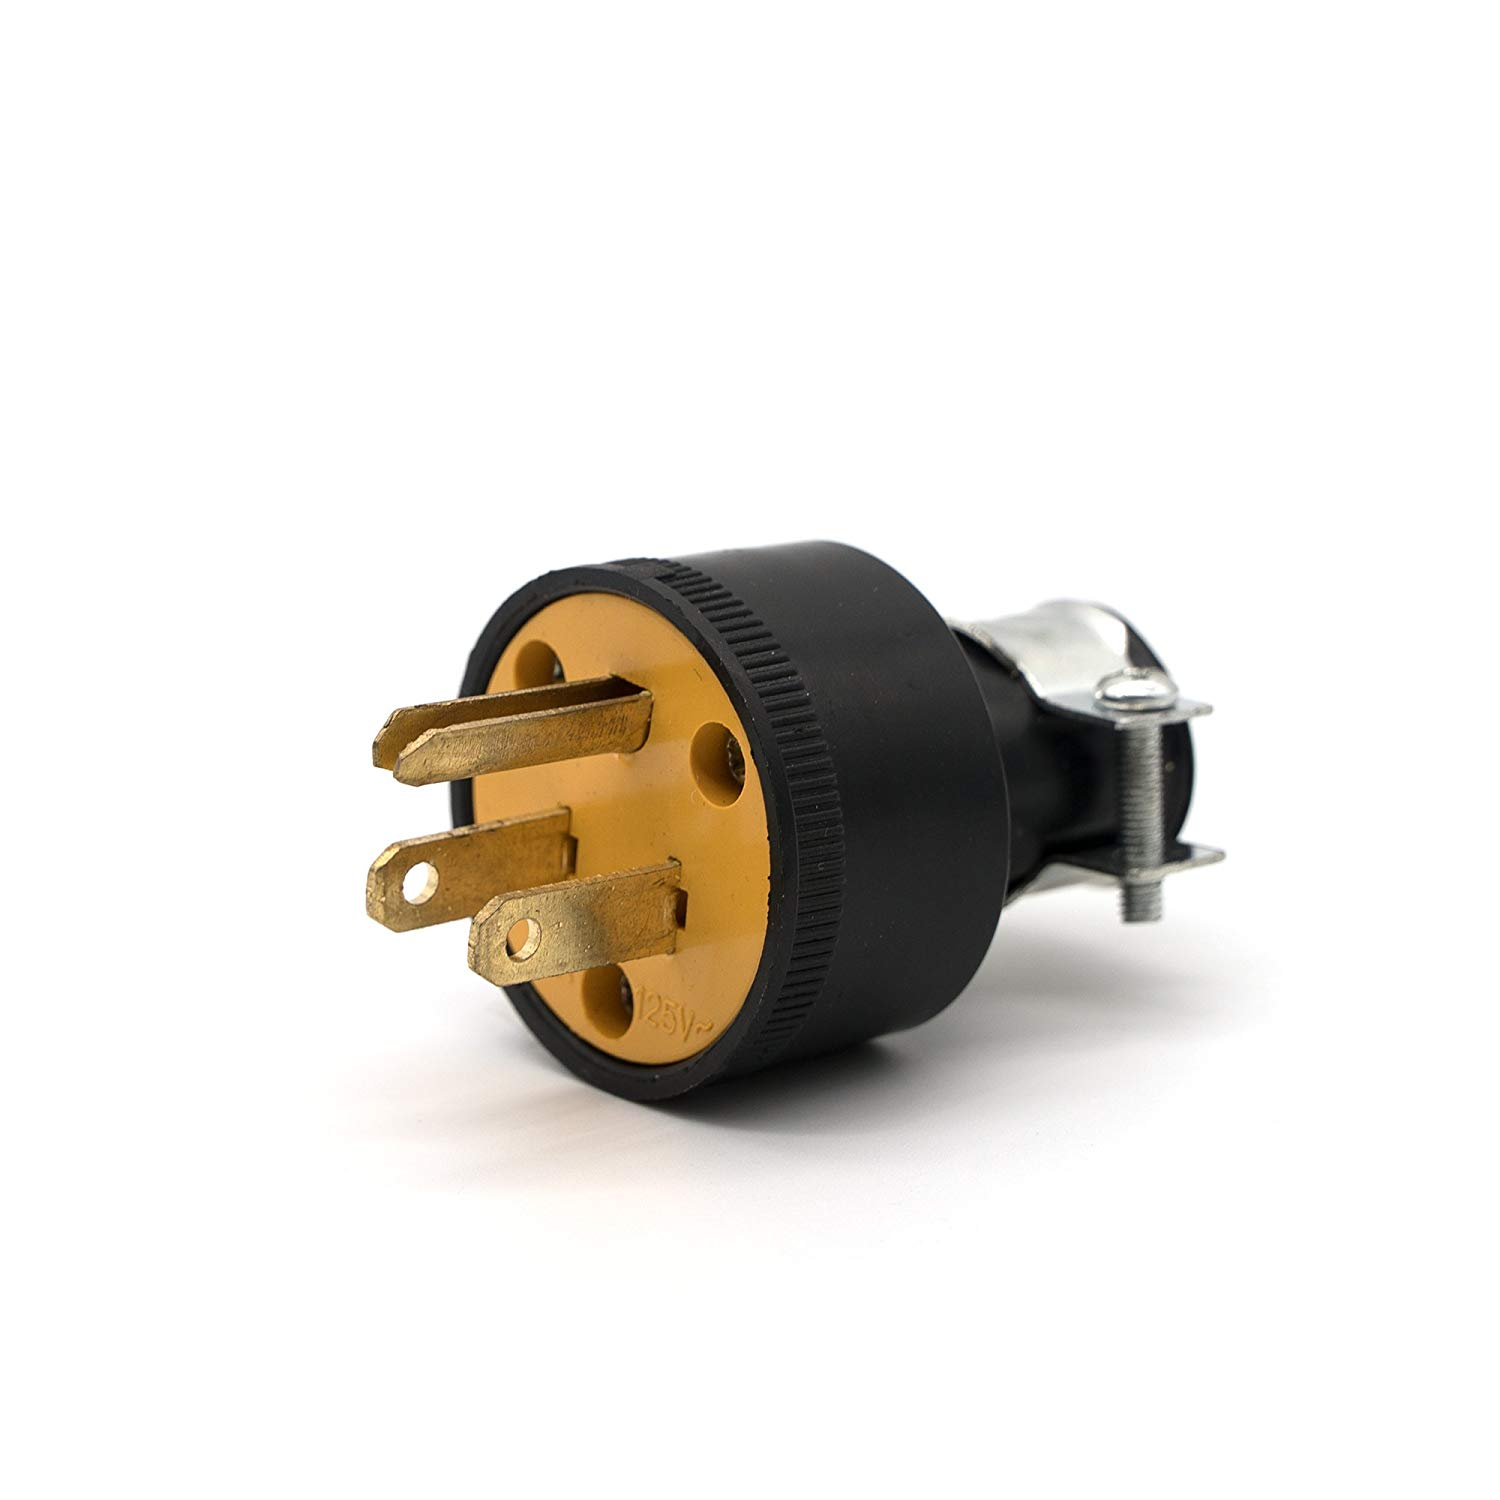 hight resolution of cheap electrical cord plug replacement find electrical cord plugram pro 3 wire replacement male electrical